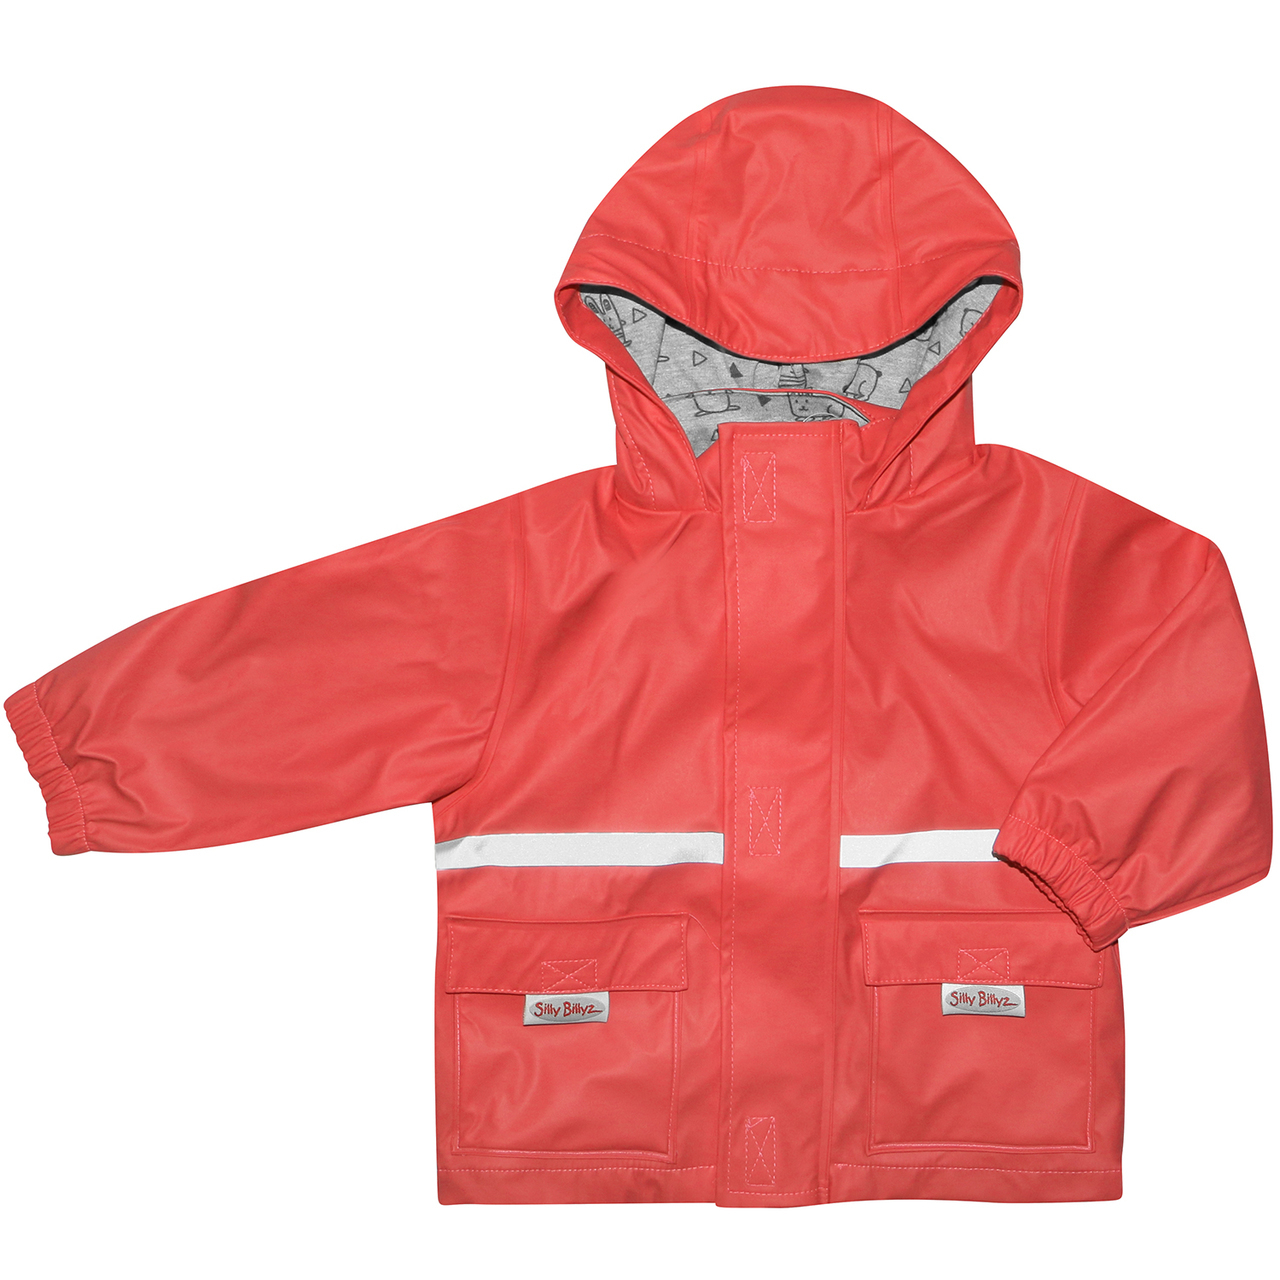 Silly Billyz Waterproof Jacket - Red (2-3 Yrs) image